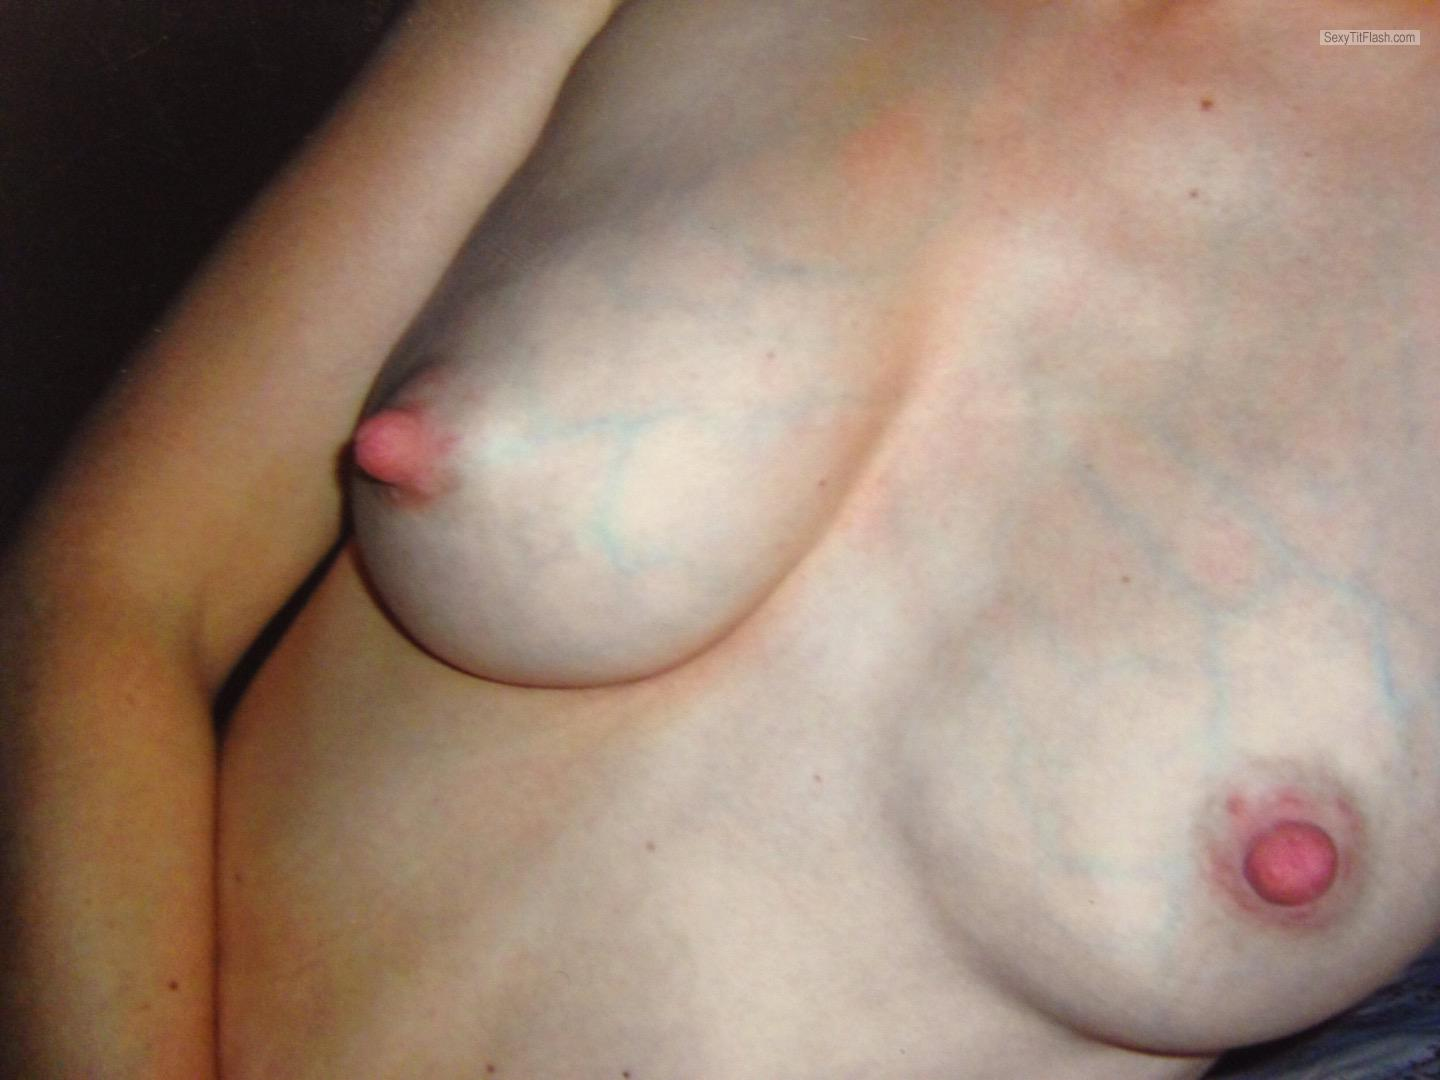 Tit Flash: My Small Tits - Lelly from United States